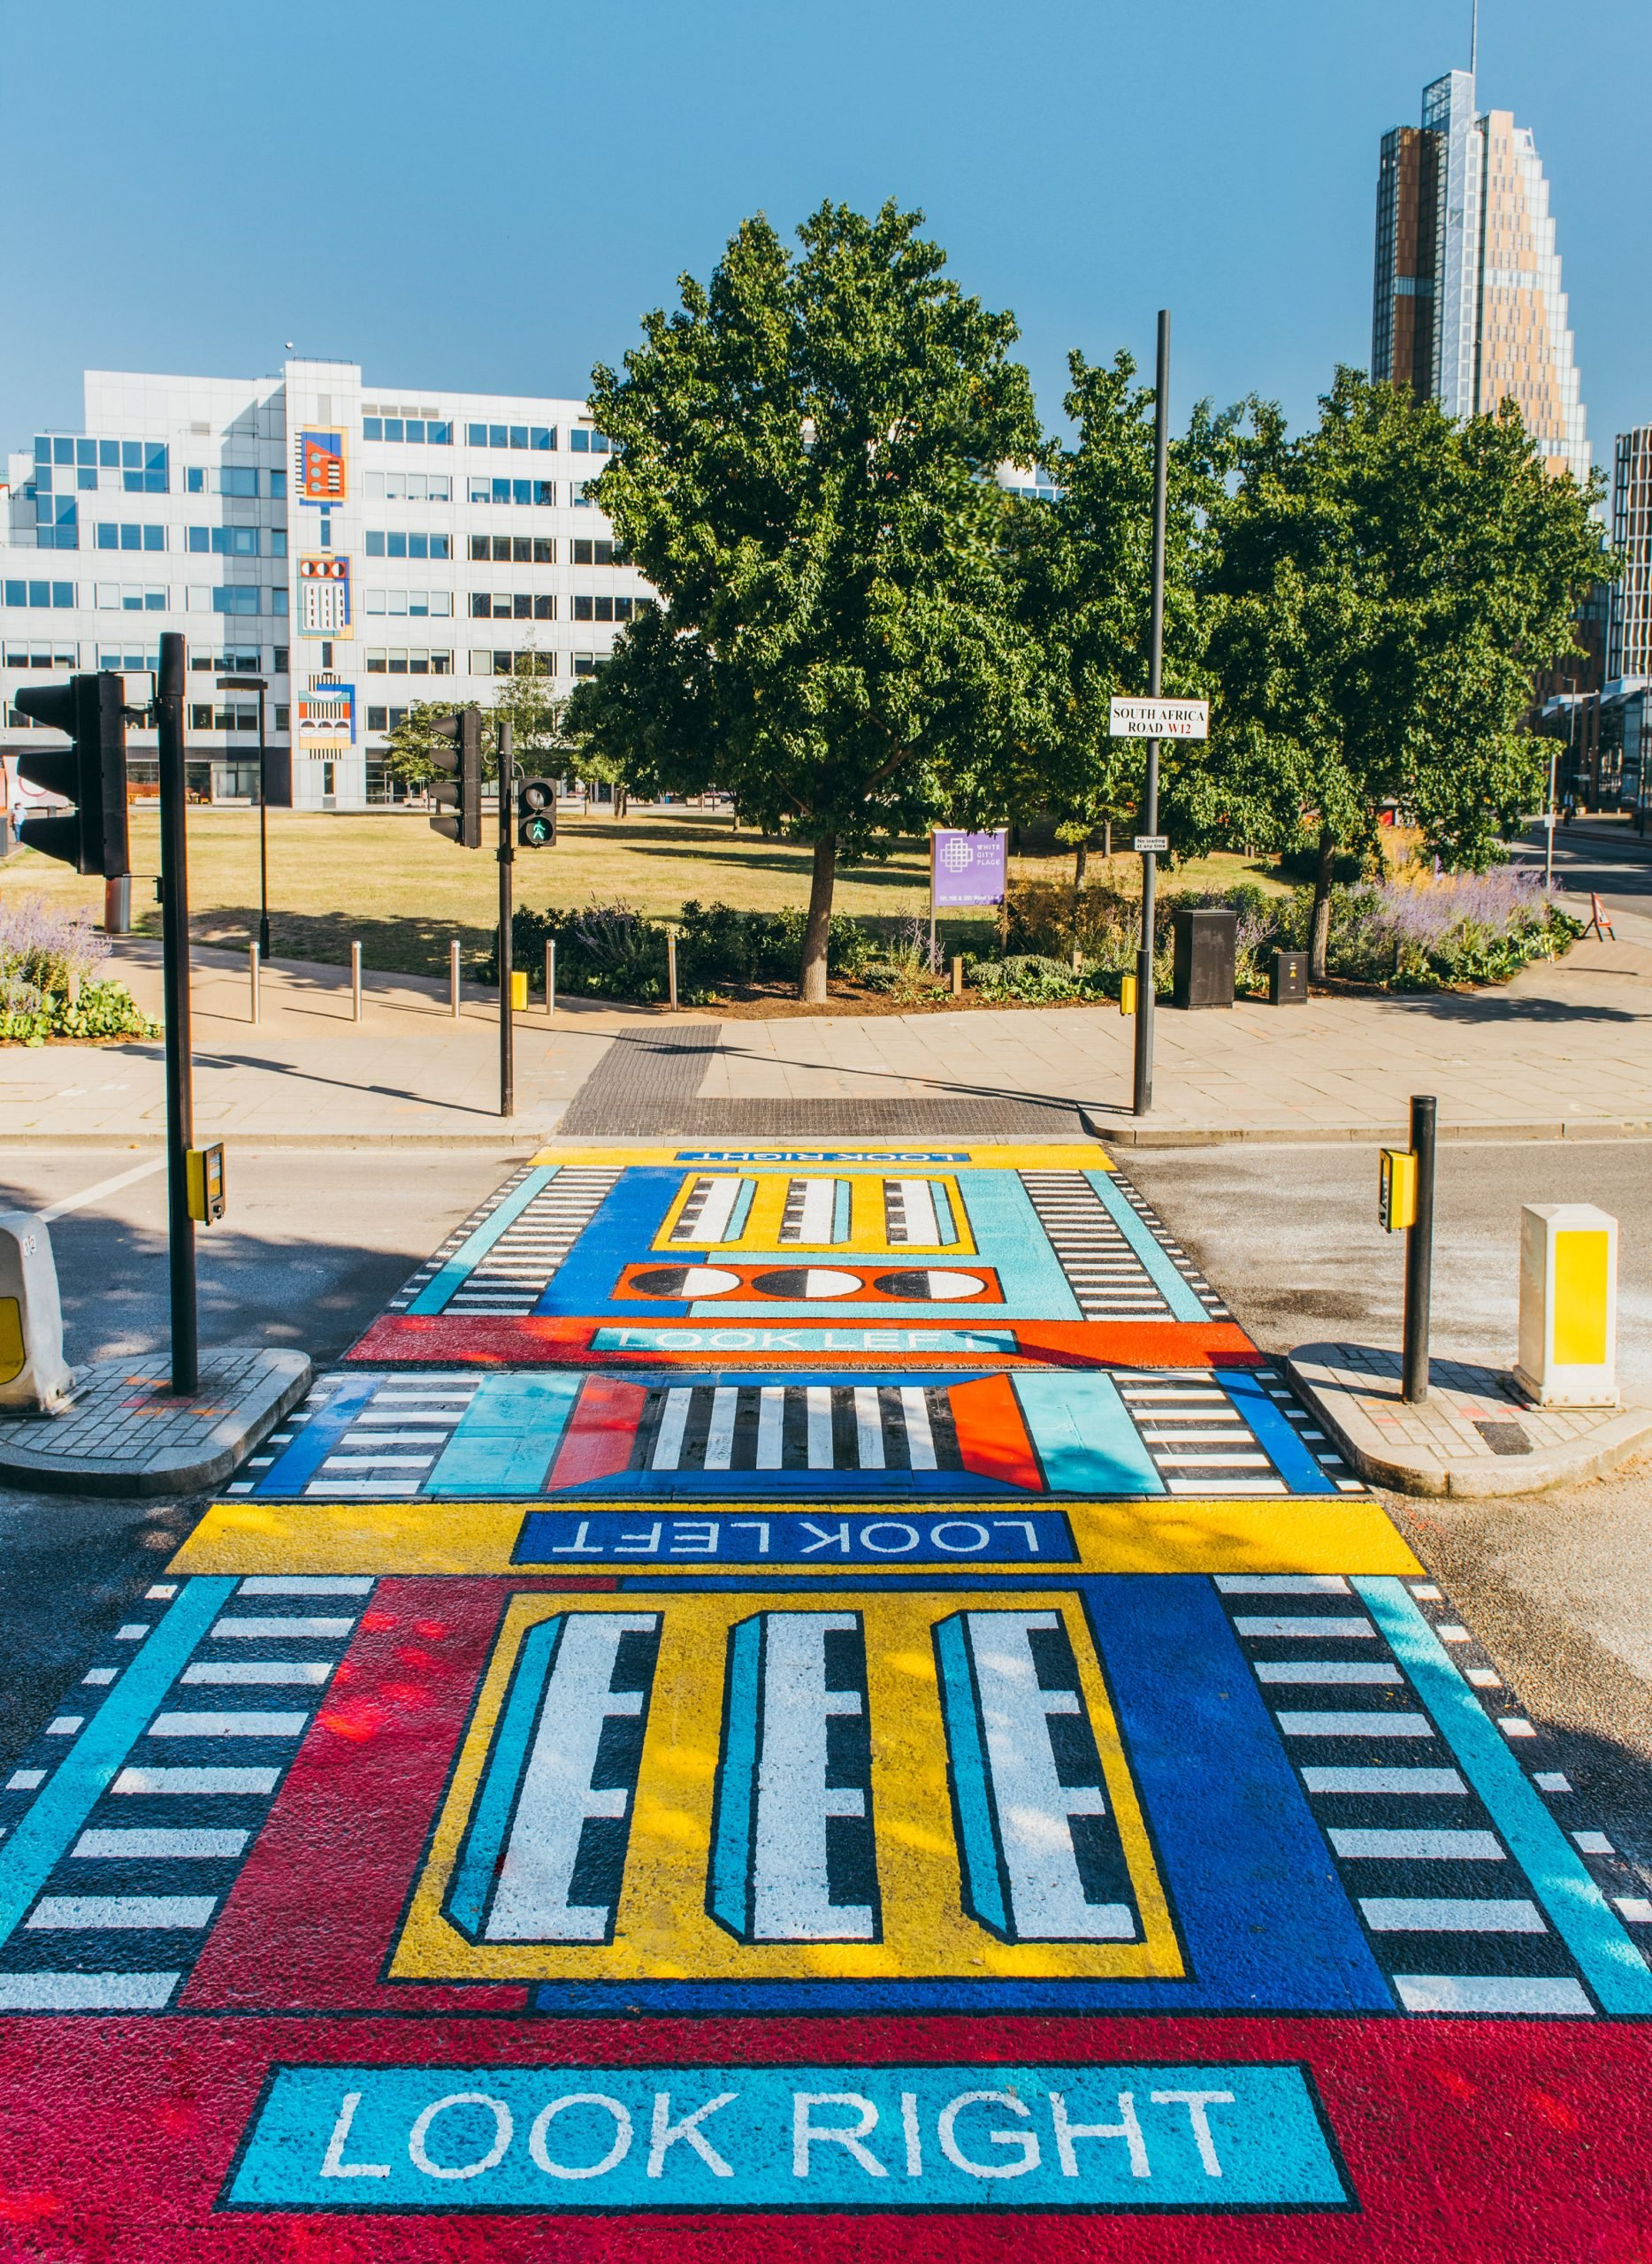 Camille Walala artwork pays homage to West London architecture